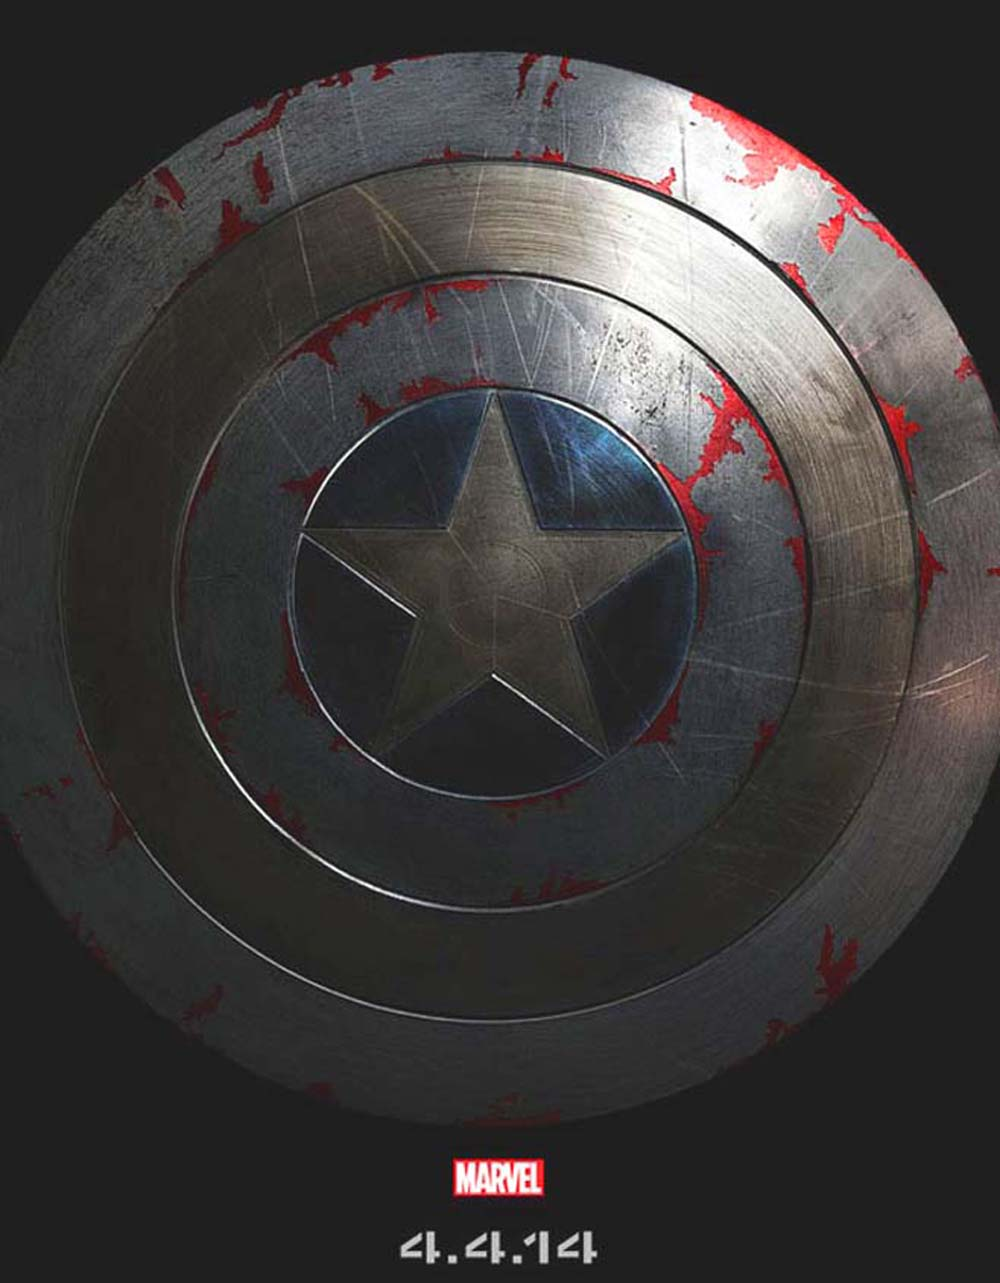 Captain America: The Winter Soldier poster shield